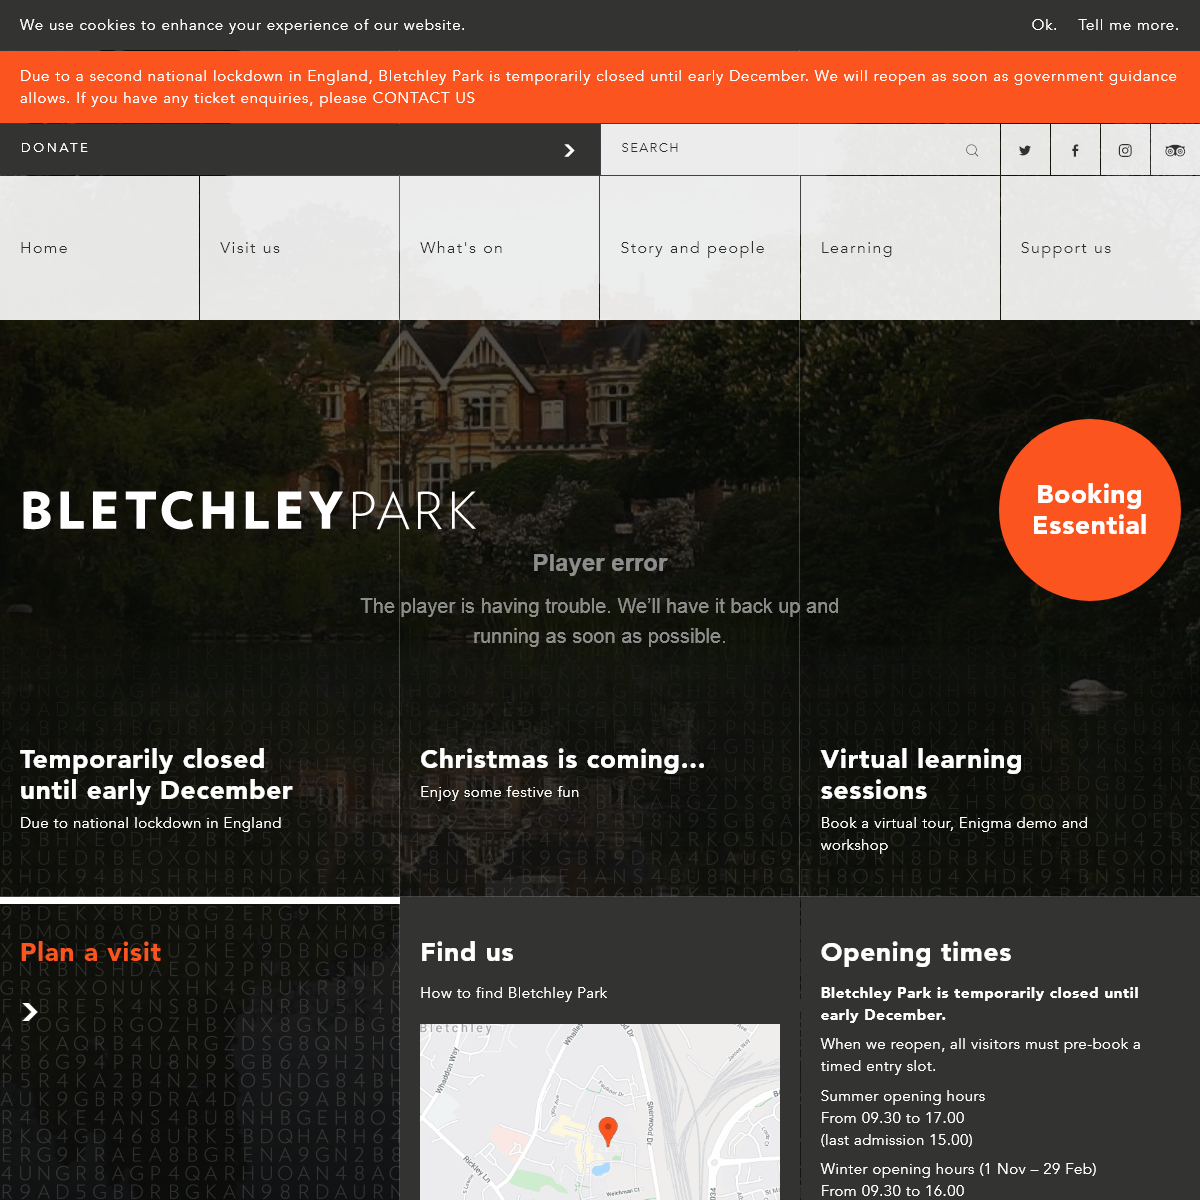 Bletchley Park - Home